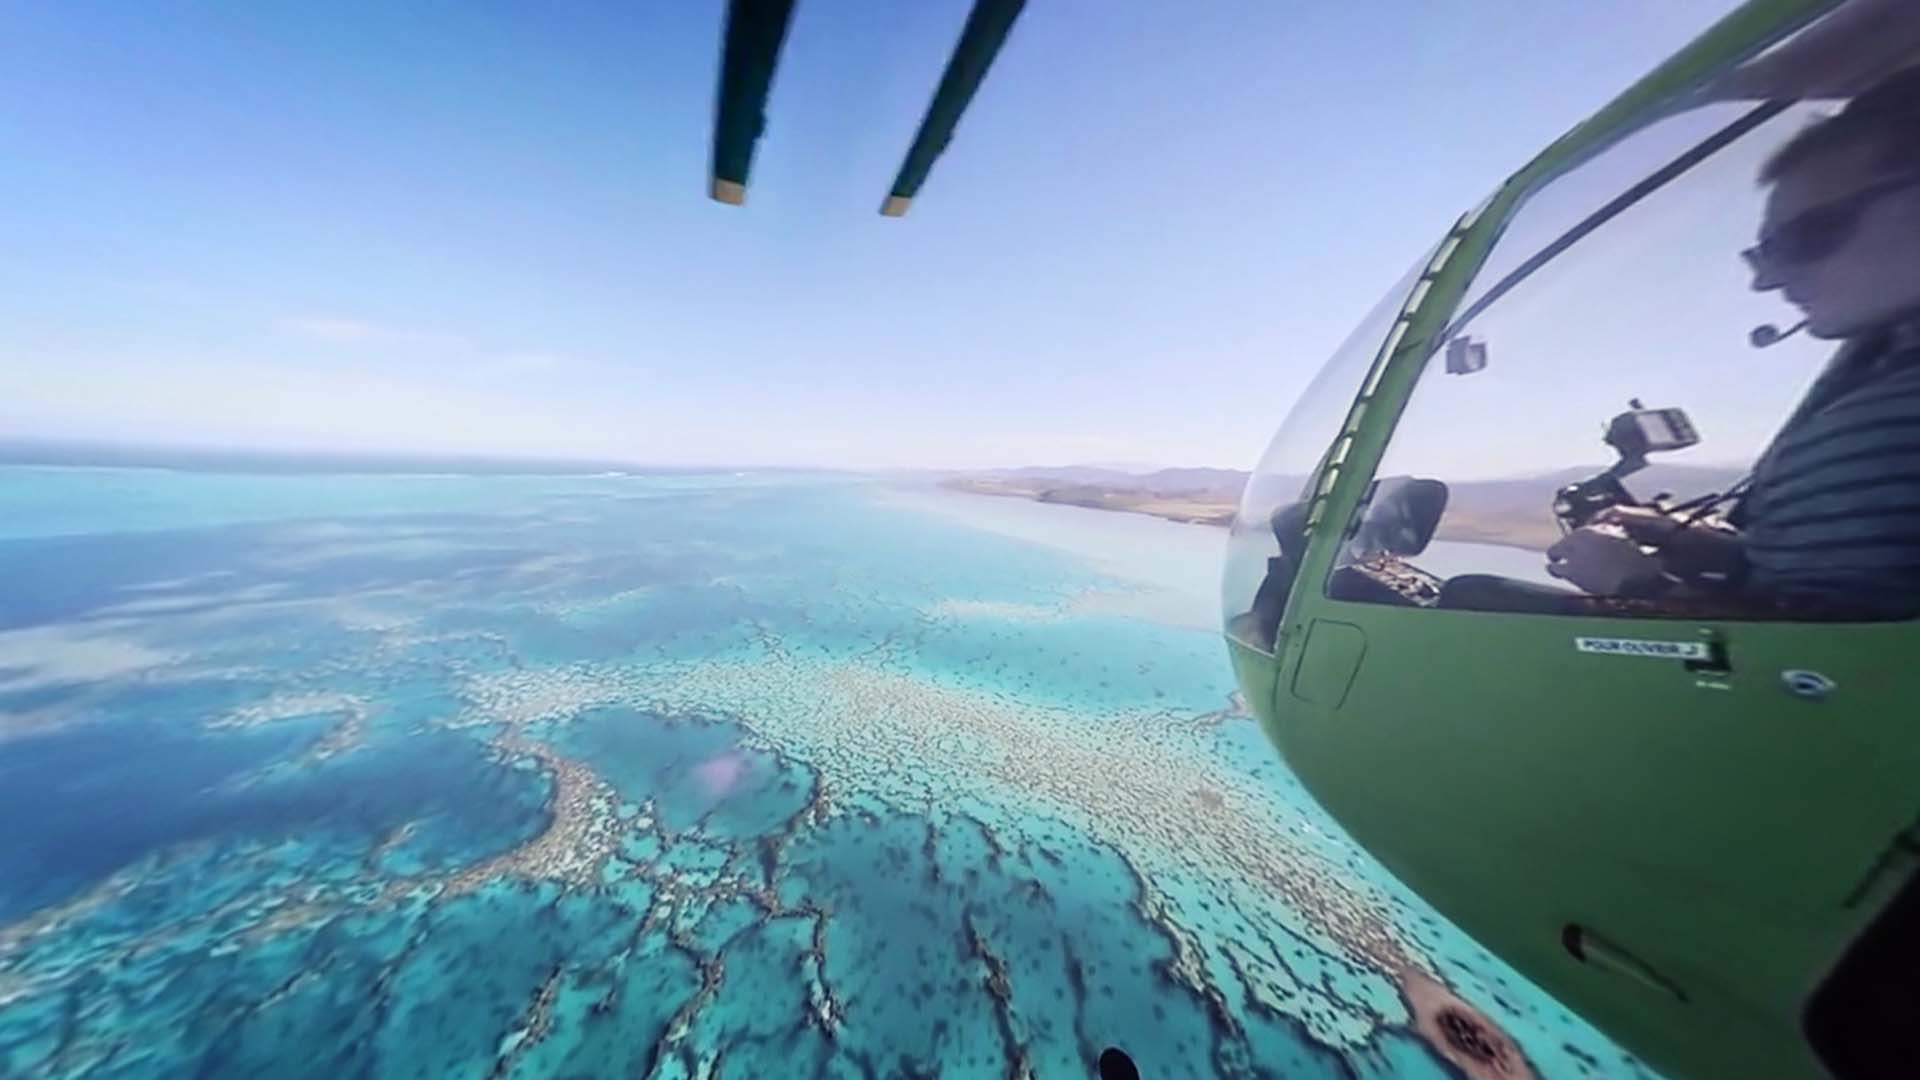 New Caledonia VR Helicopter View